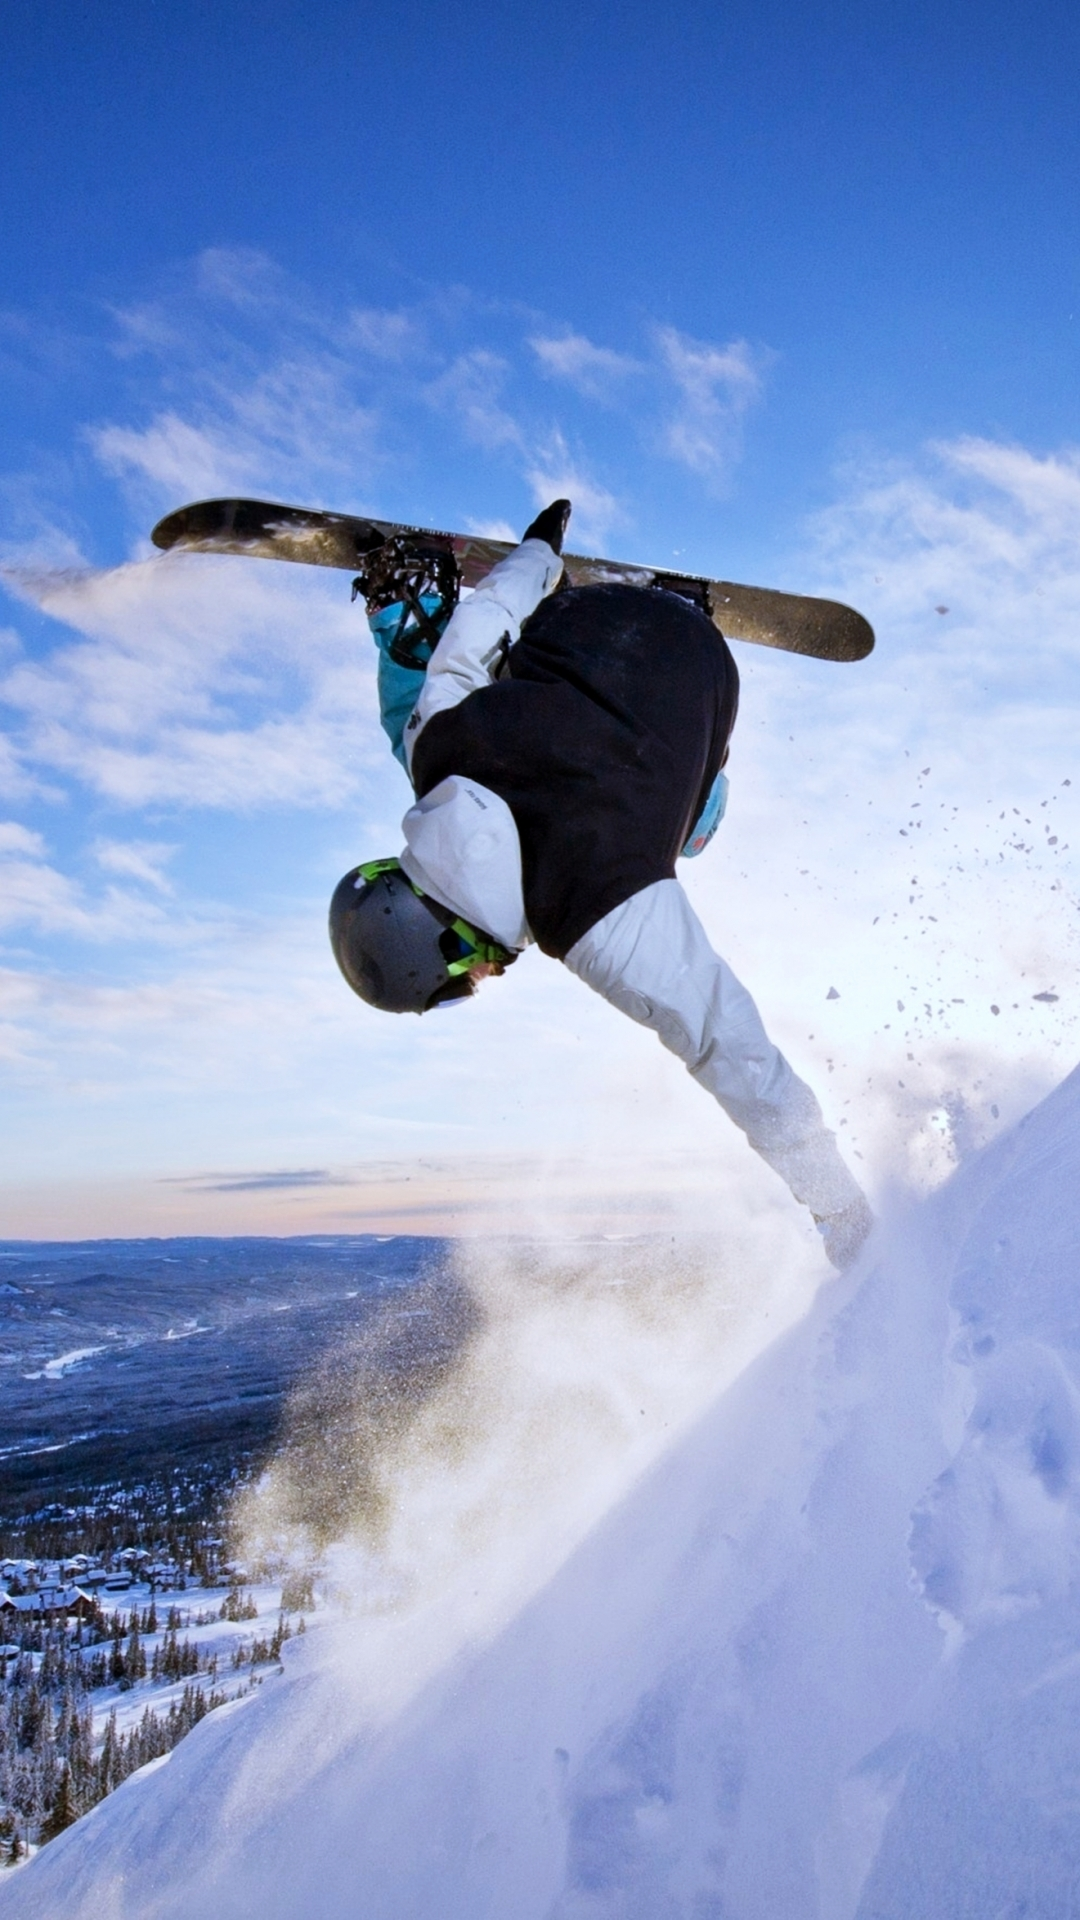 Snowboarding wallpaper iphone